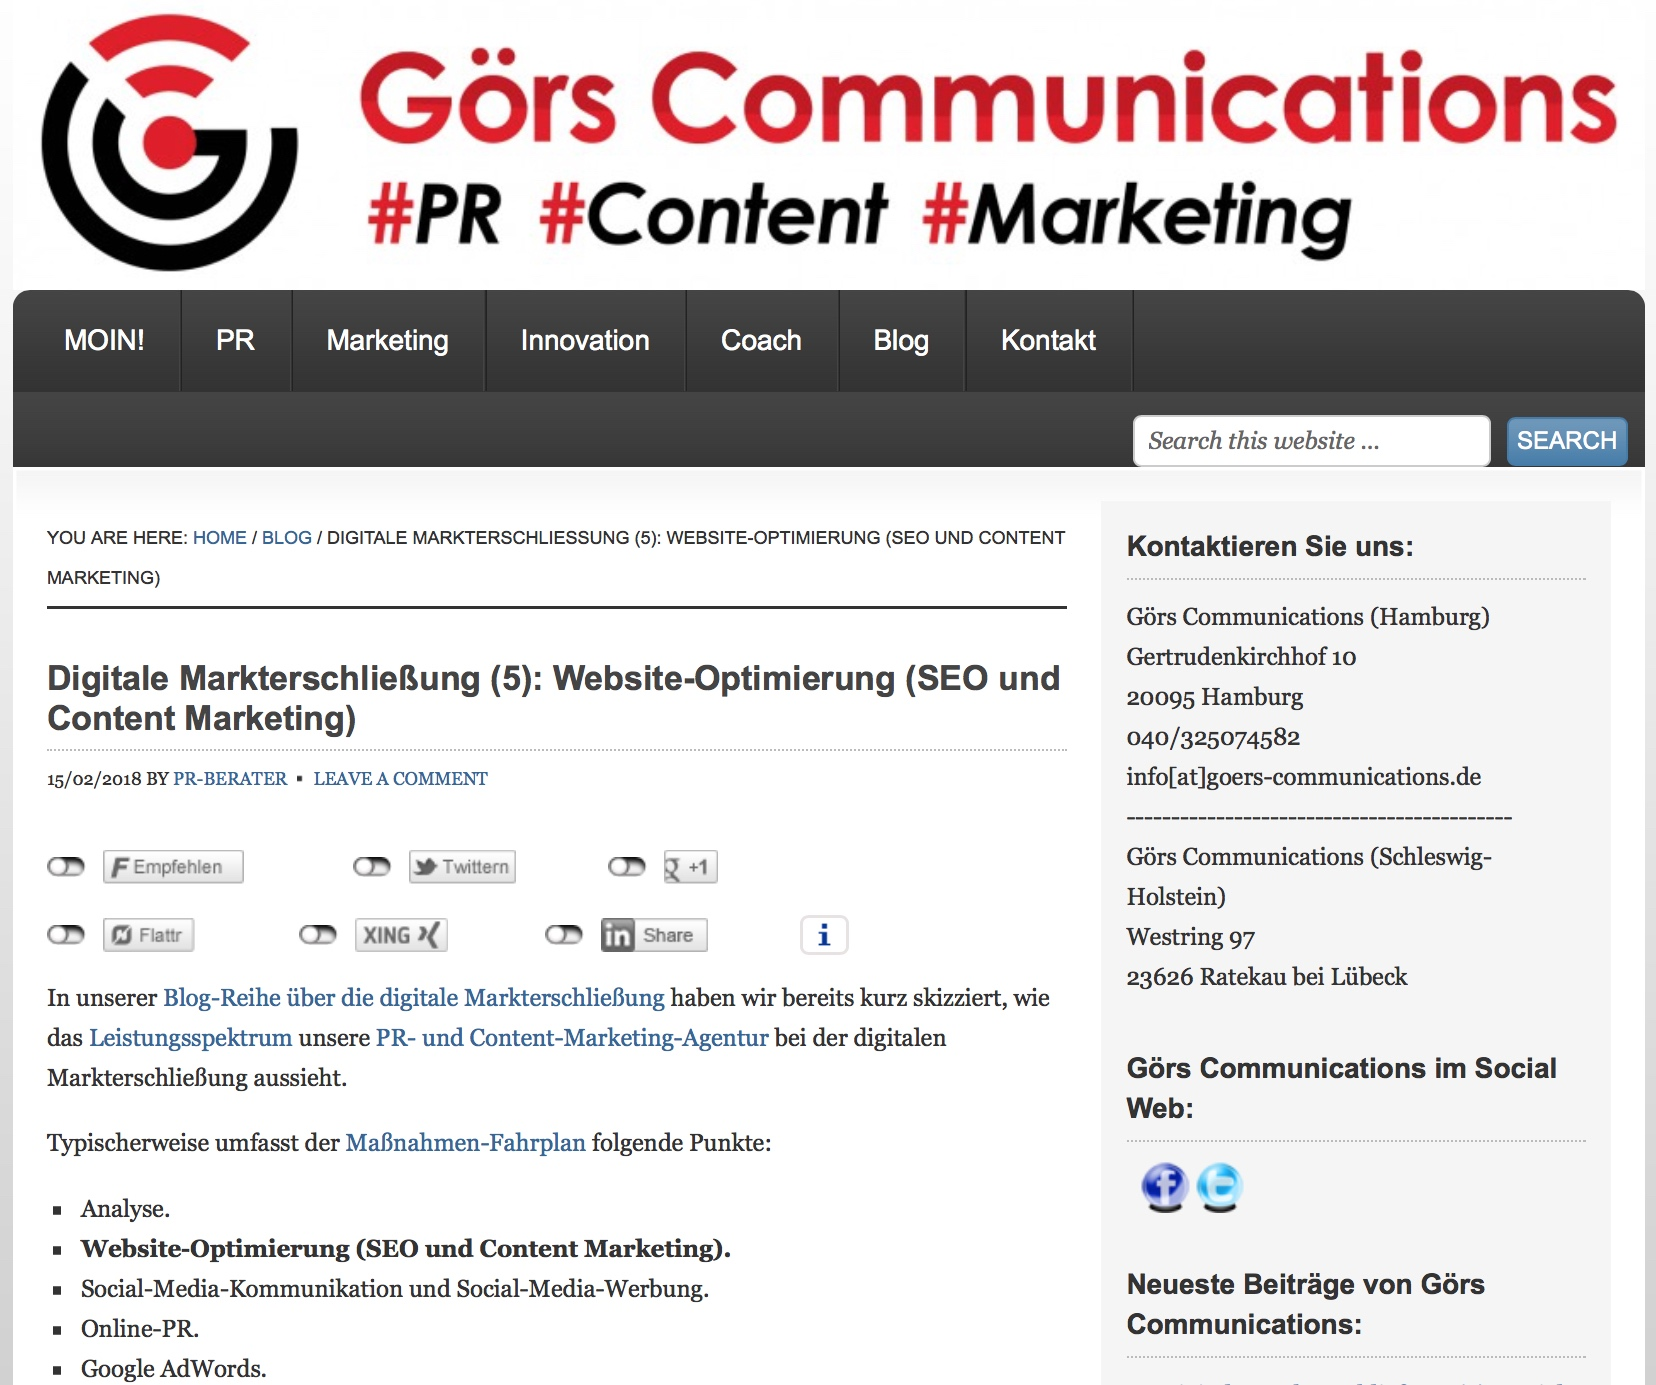 Blog Serie Digitale Markterschließung (5): Website Optimierung (SEO und Content Marketing)